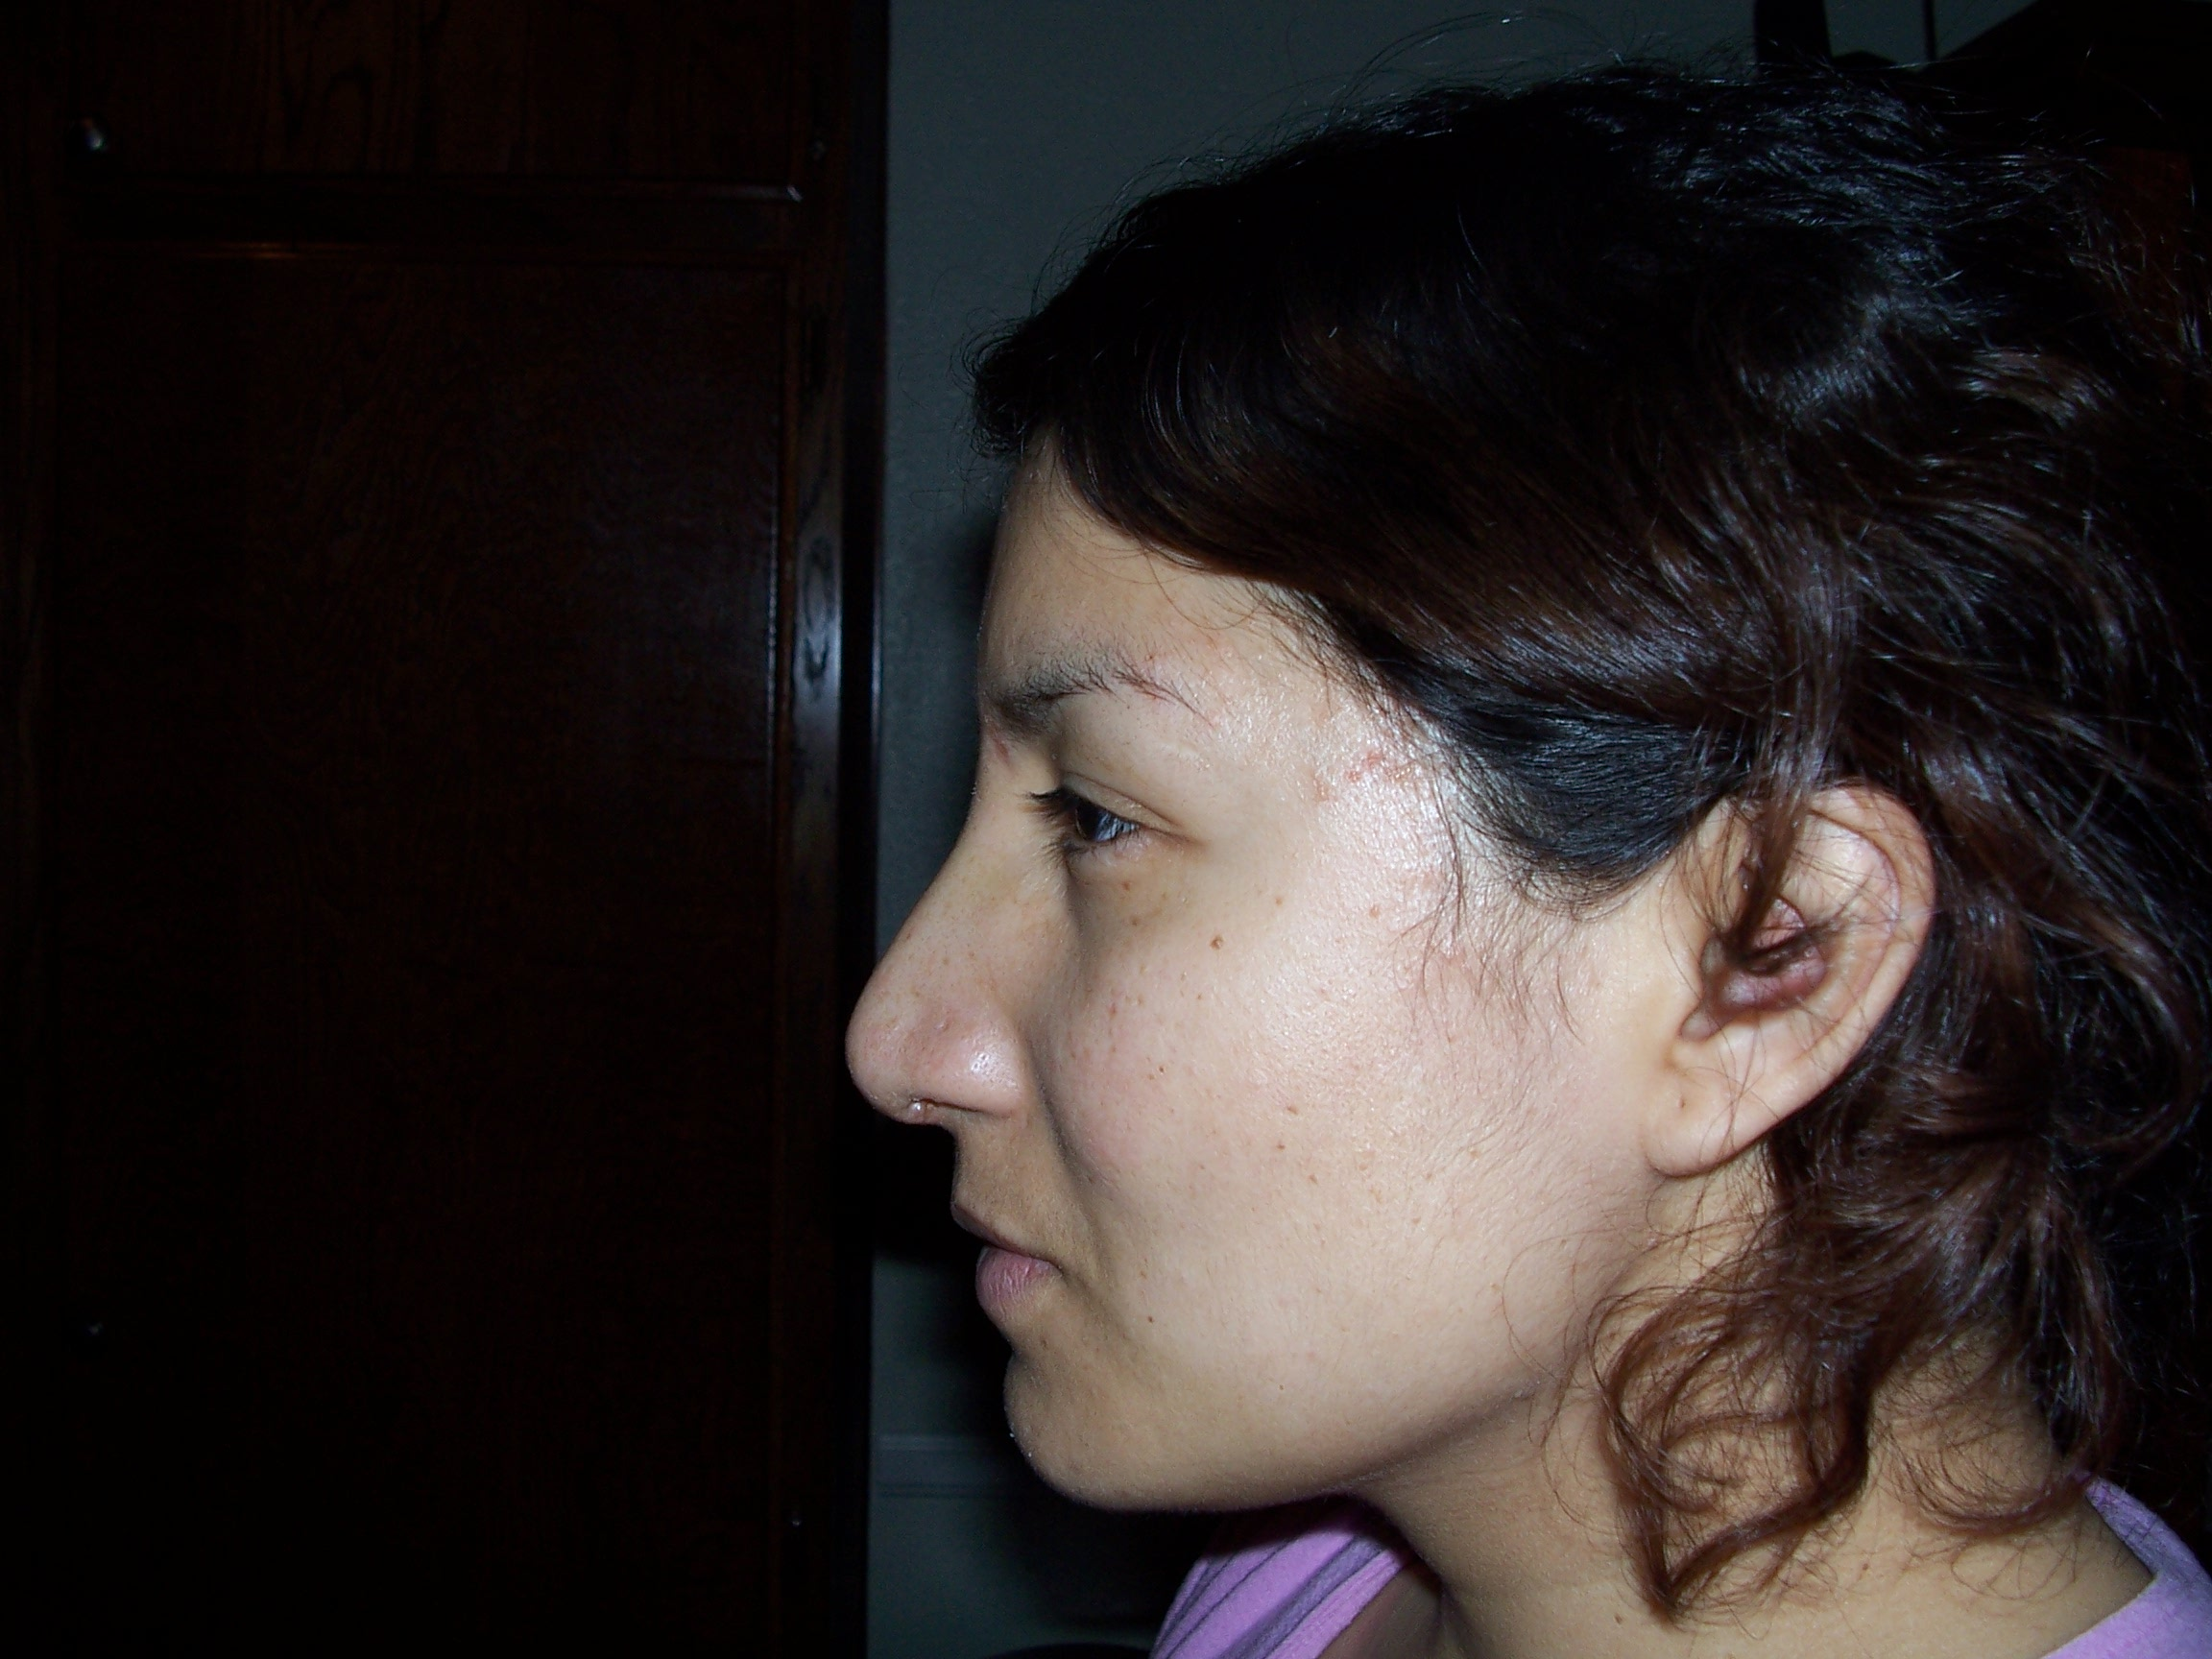 Profile- after